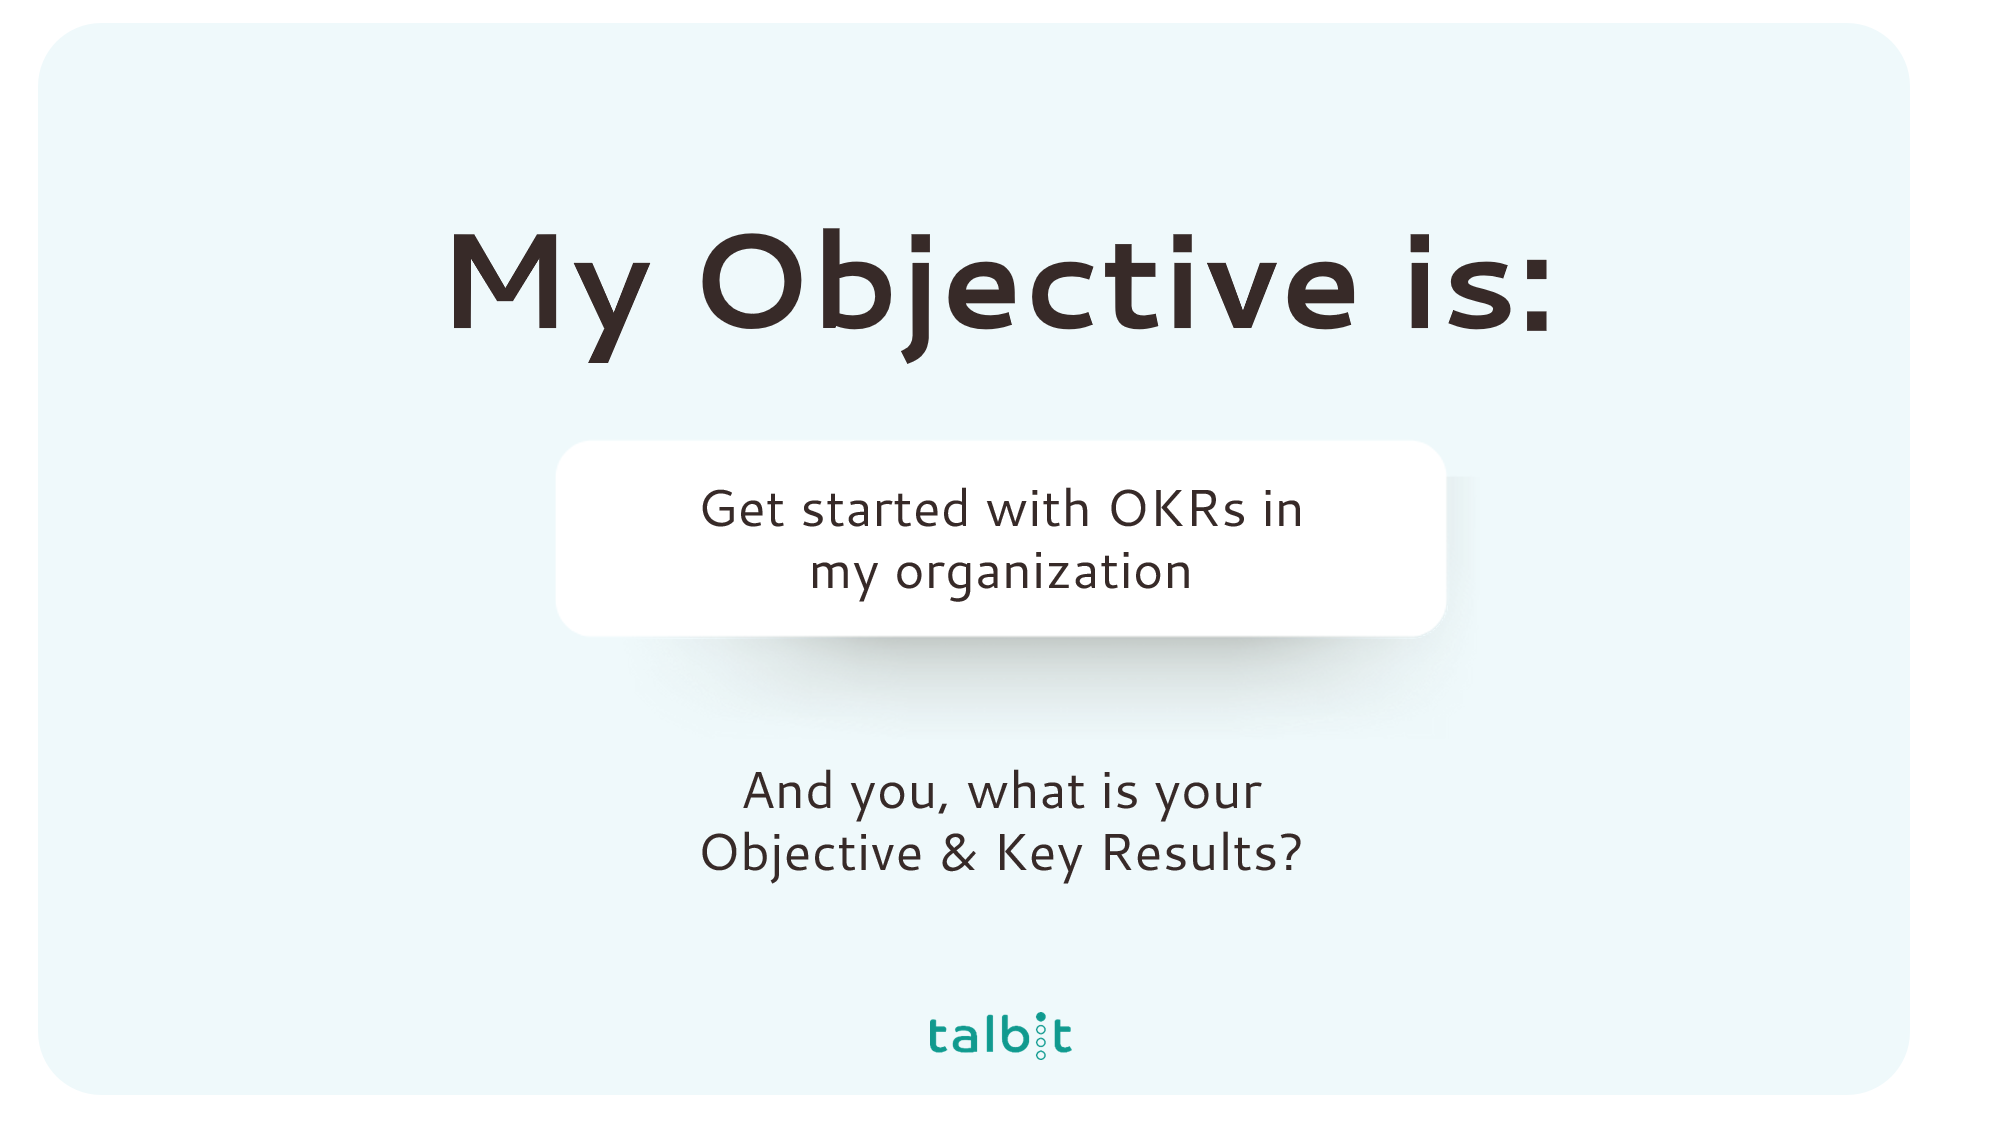 How to get started with OKRs?